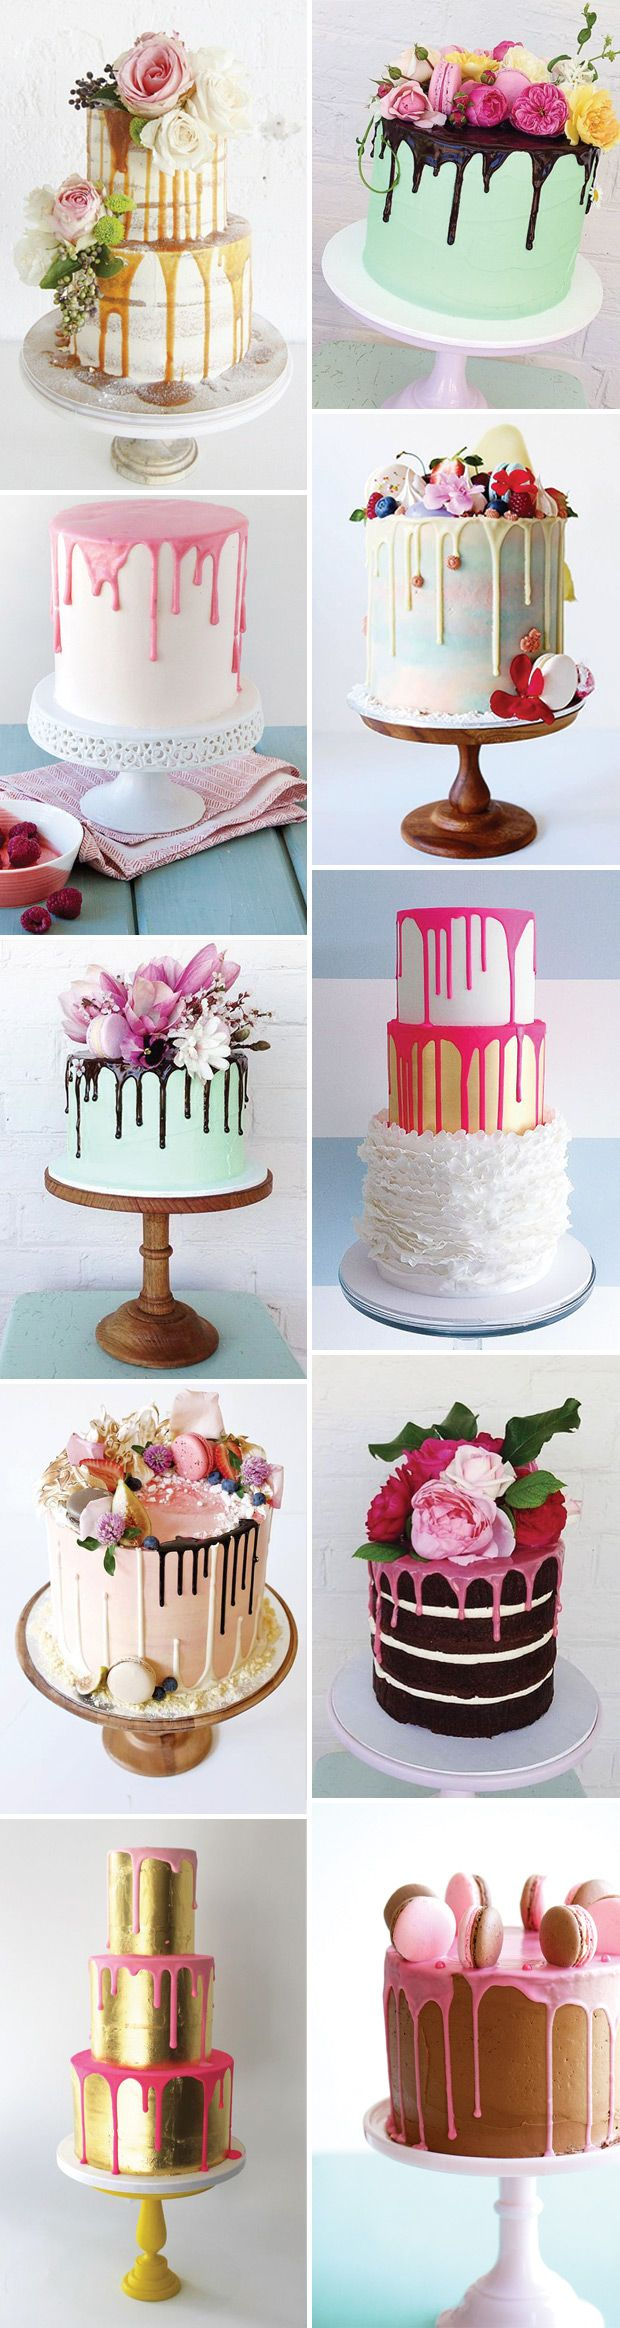 The Hottest Cake Trend Delish Fun Colour Drip Cakes Food